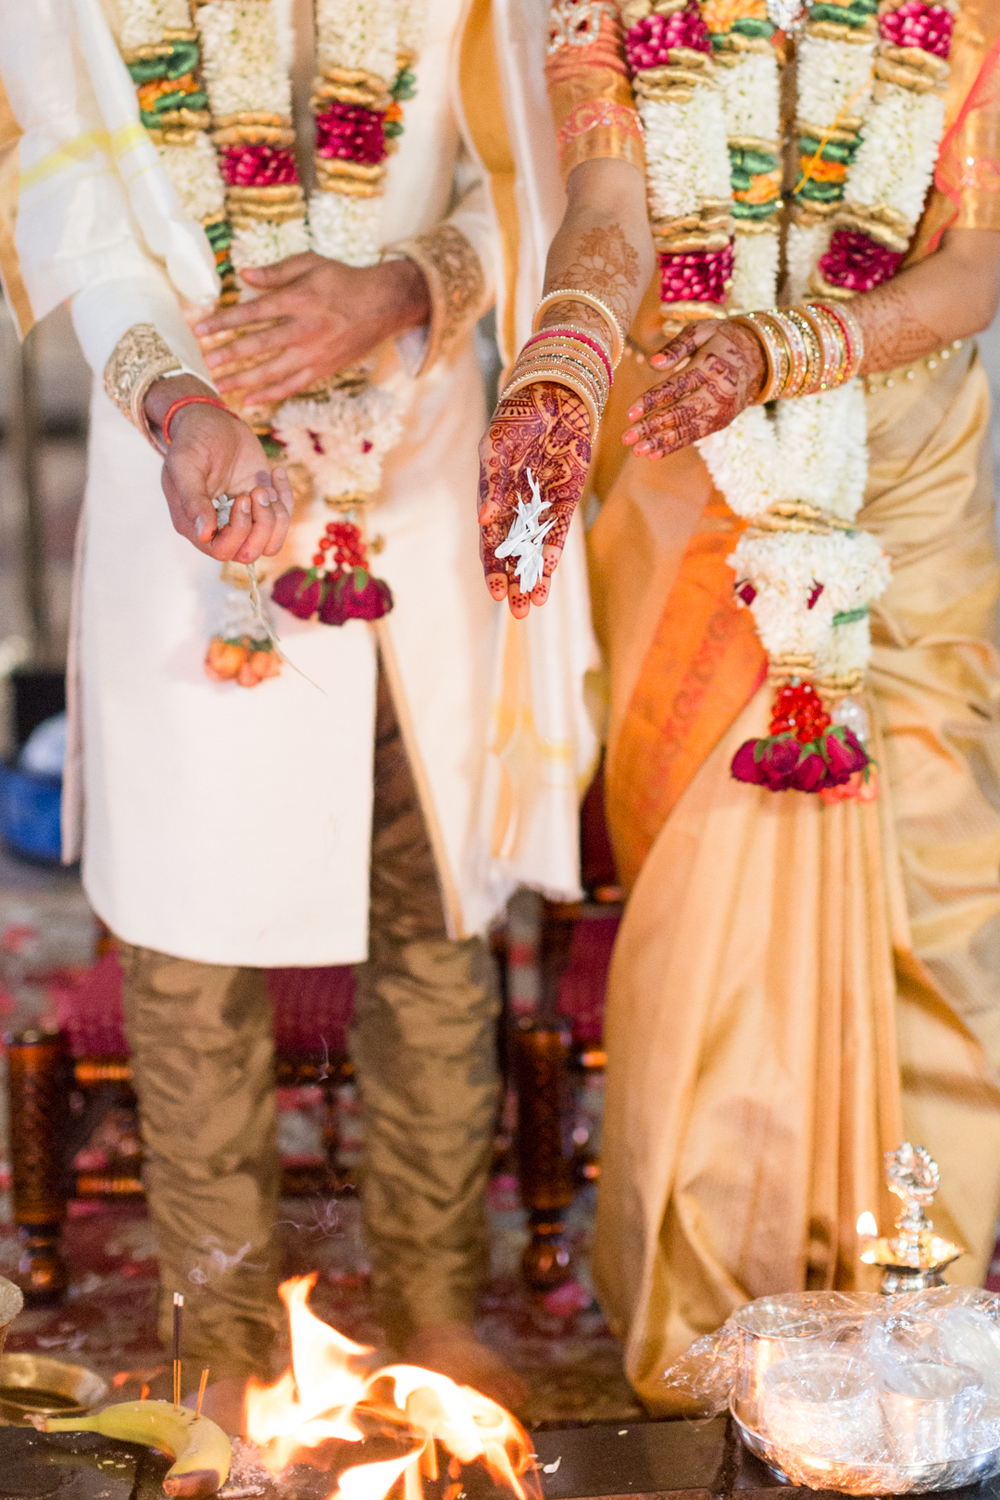 CourtneyPaige_WeddingPhotography_Nagjee-80.jpg